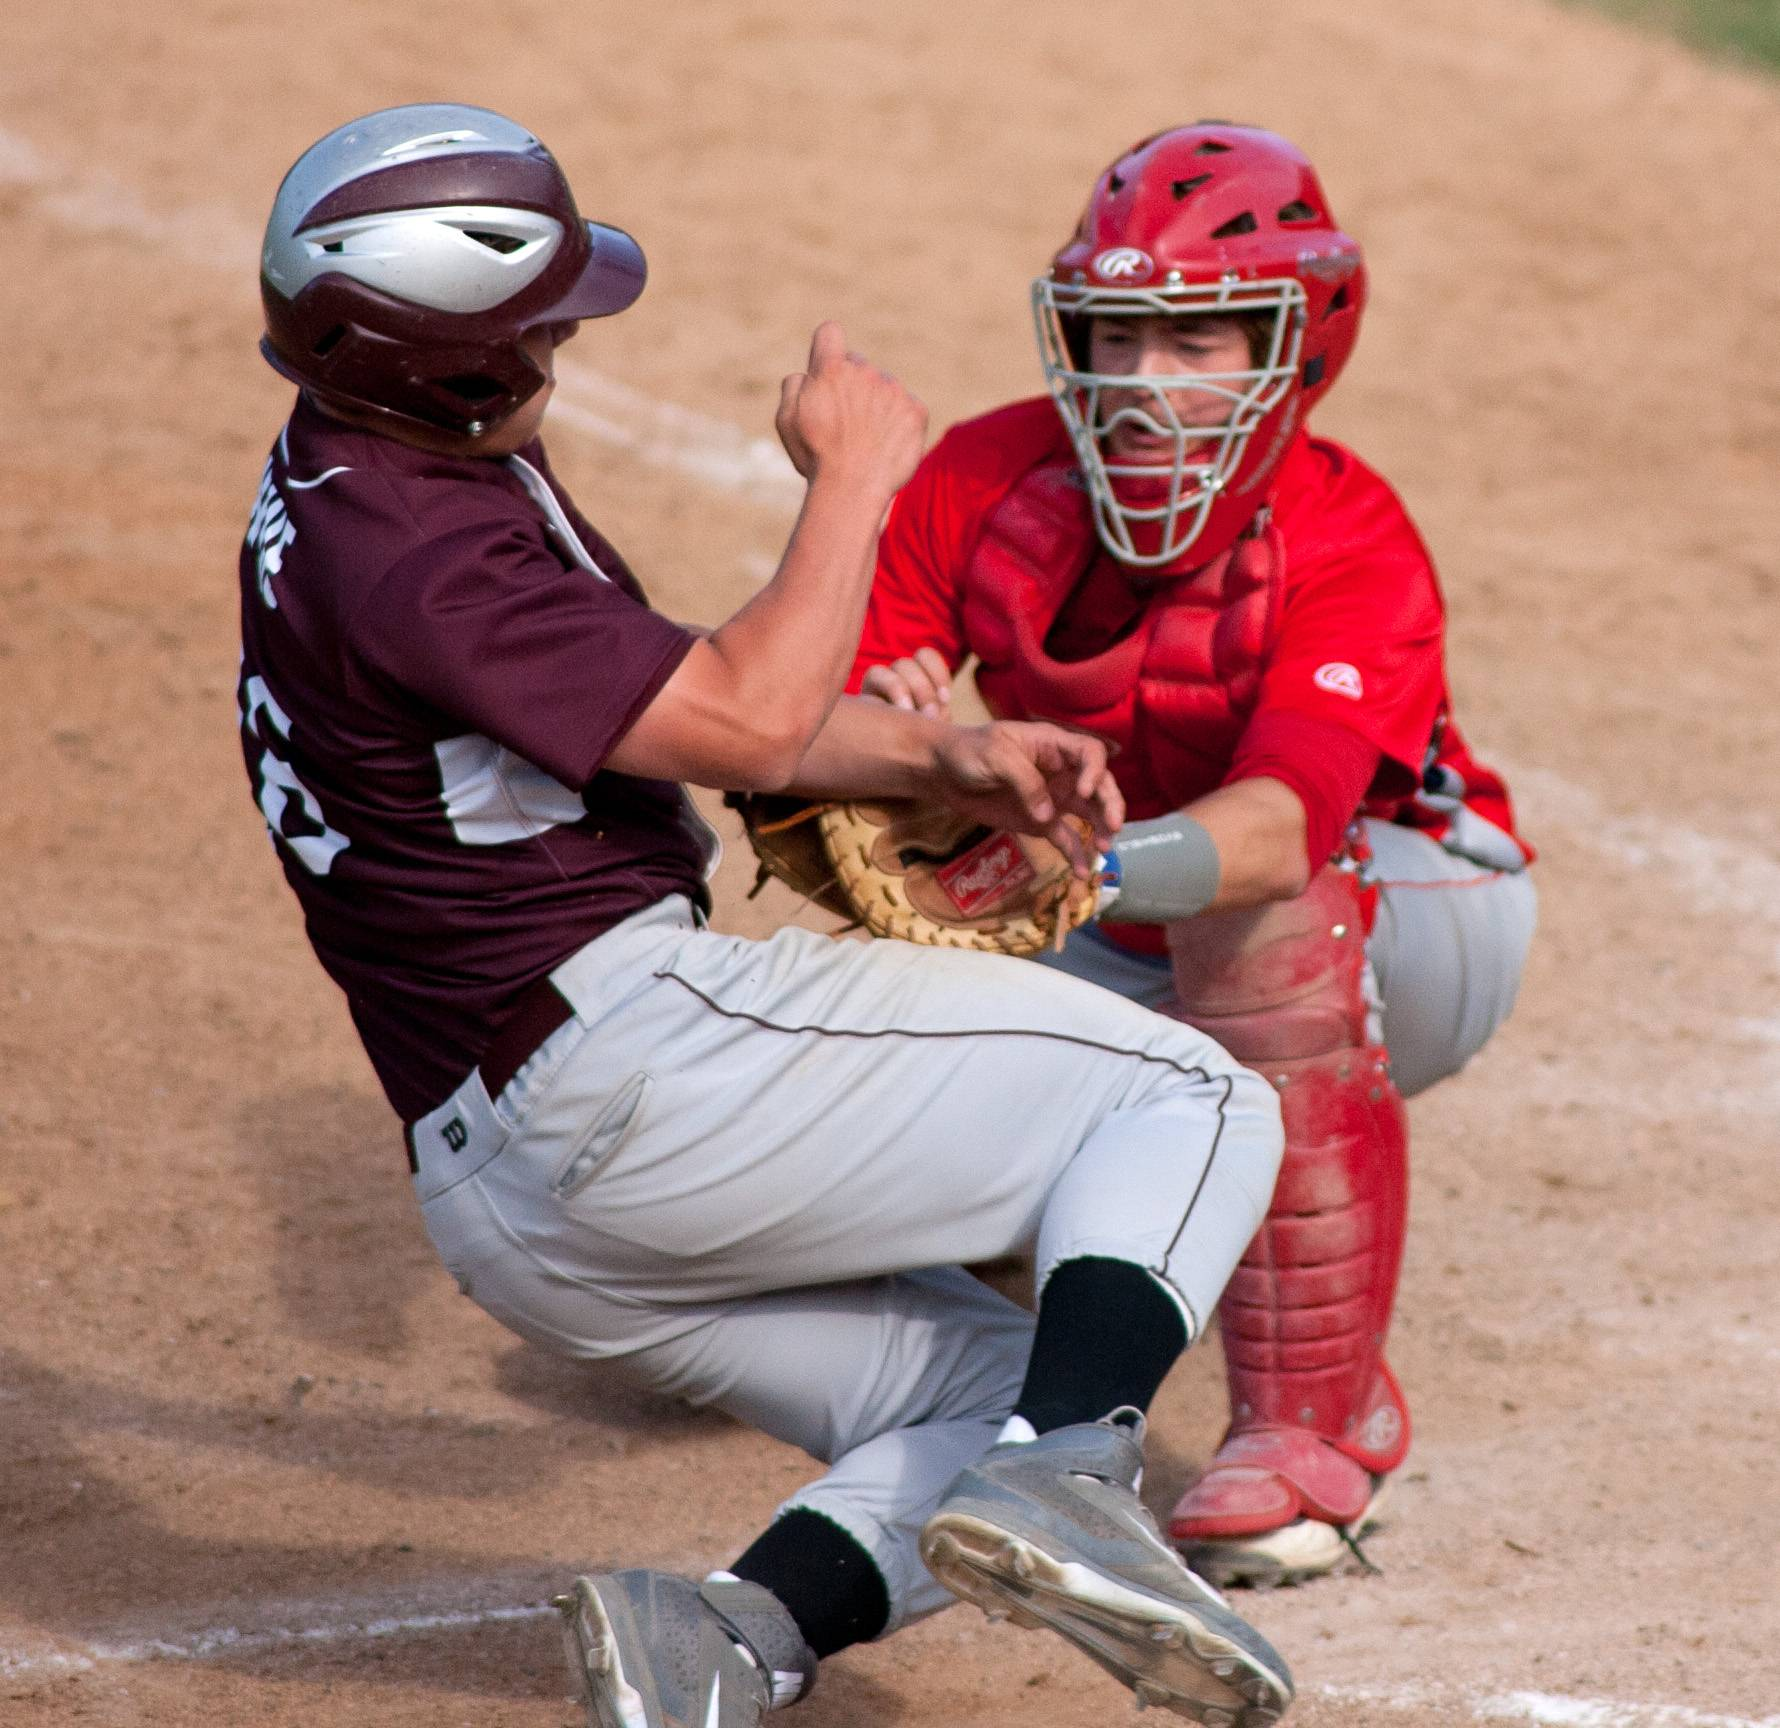 South Elgin catcher Nate Brummel tags out Prairie Ridge's Alec Thune in the sixth inning during the class 4A state baseball third place consolation game at Silver Cross Field in Joliet.